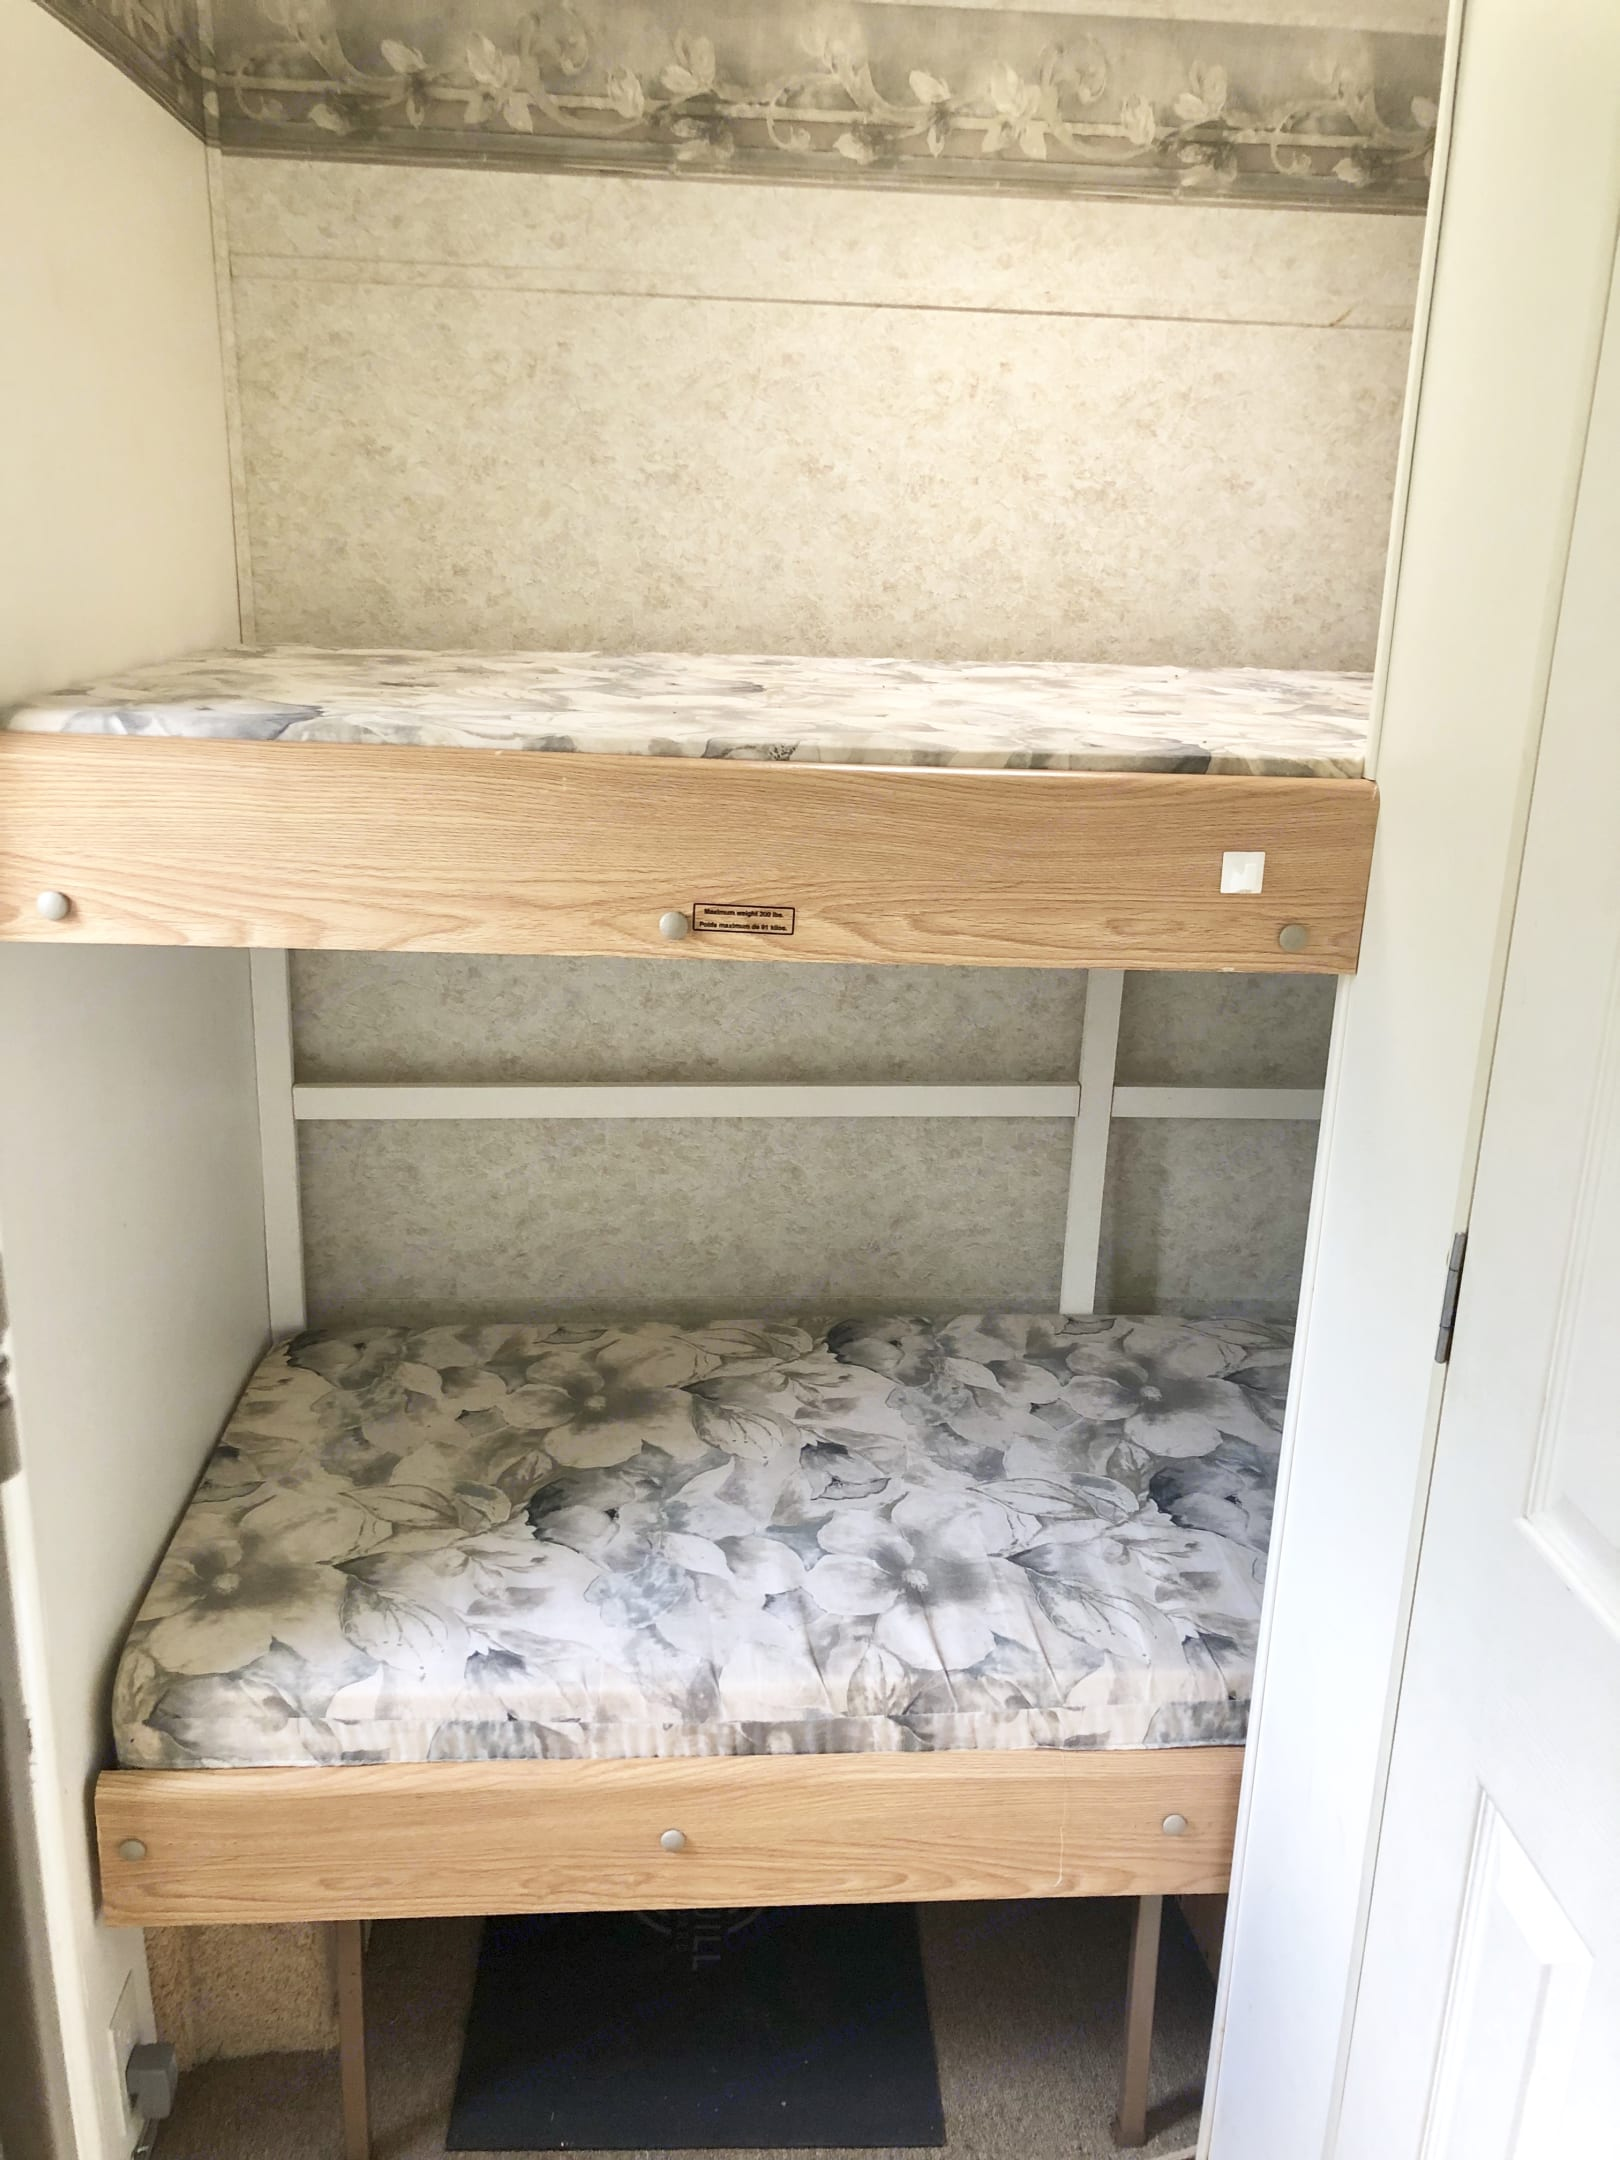 Cot sized bunks for the kids! . Starcraft Aruba 2003